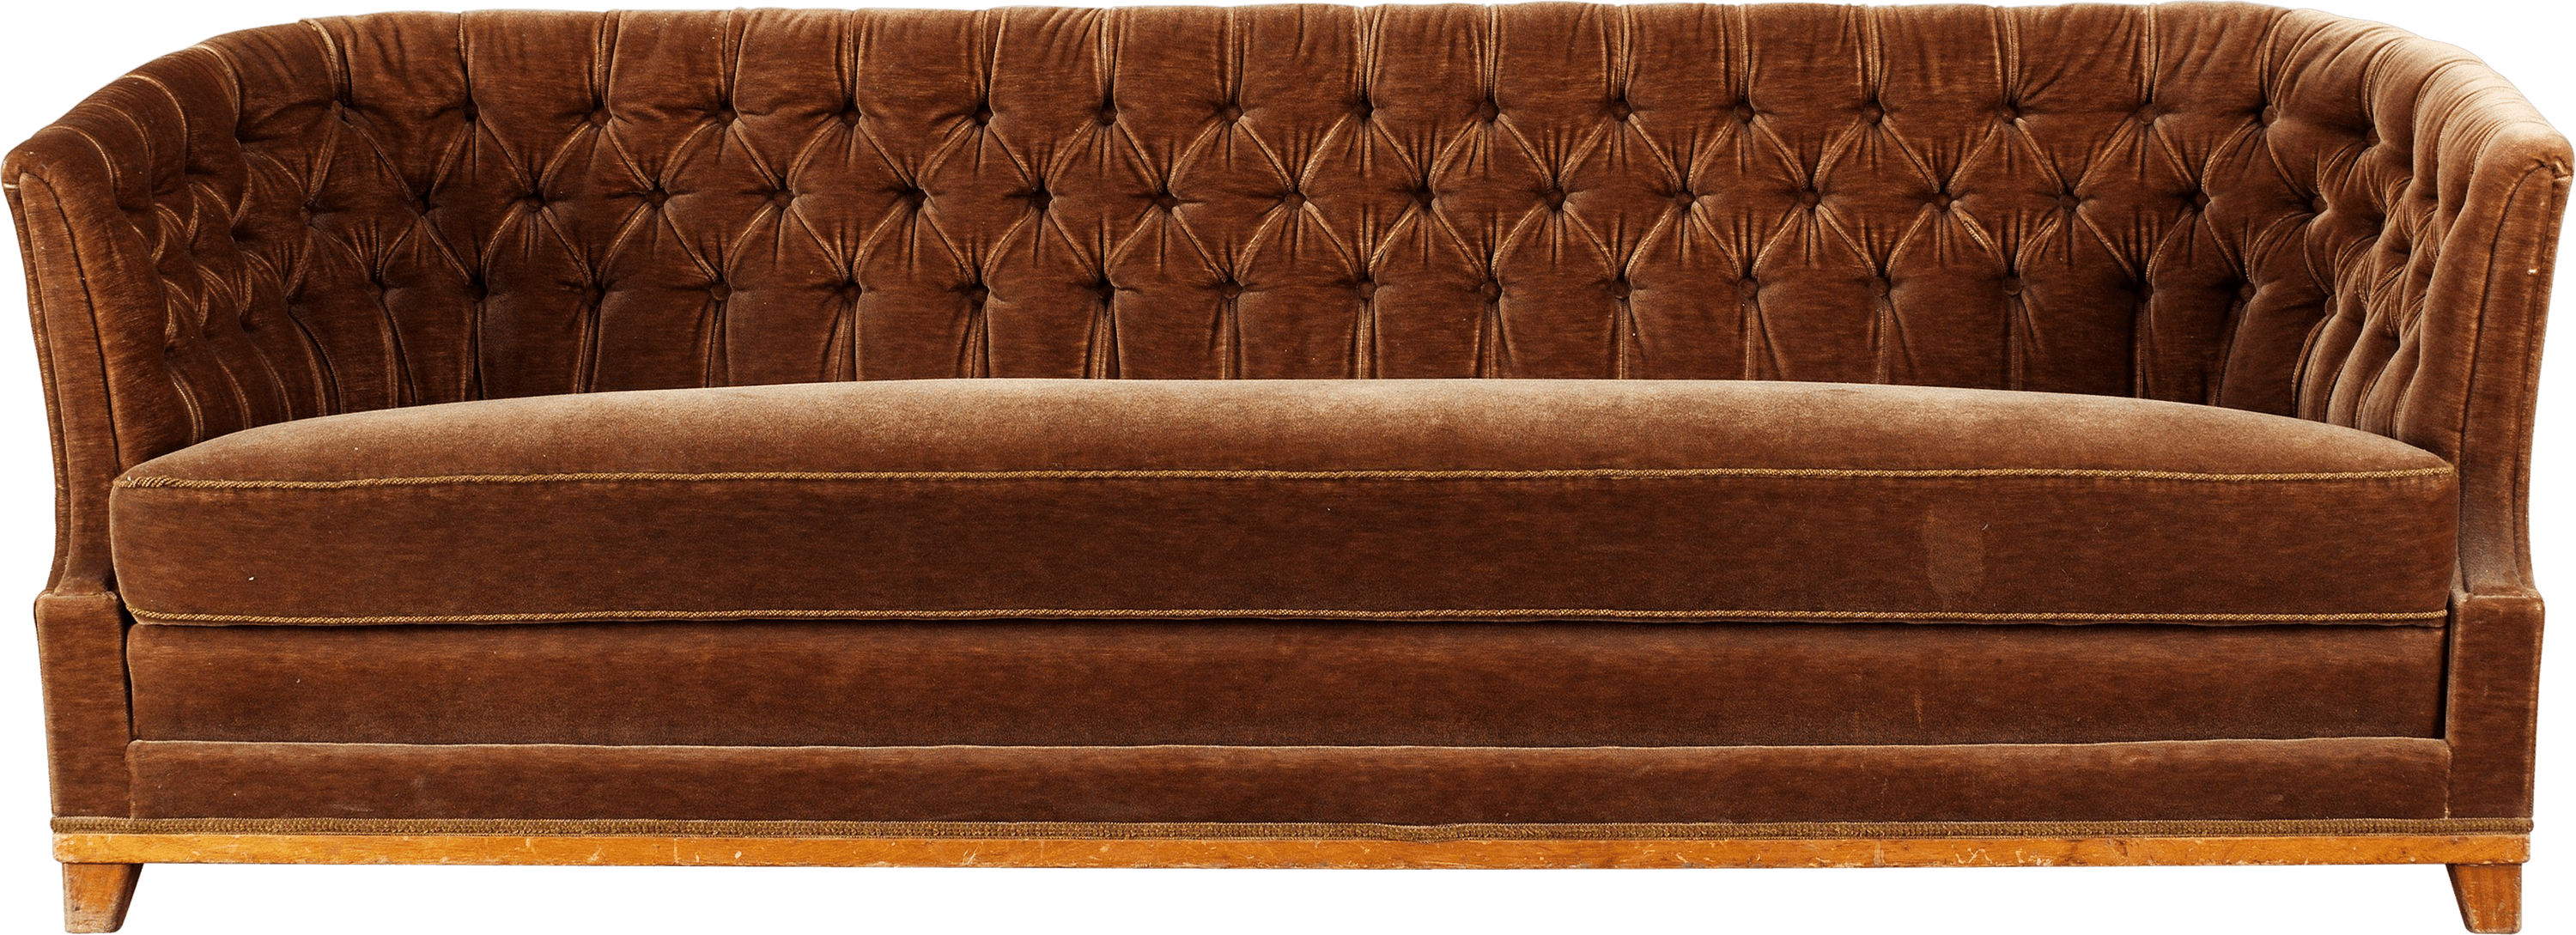 Brown couch png. Large vintage fabric sofa